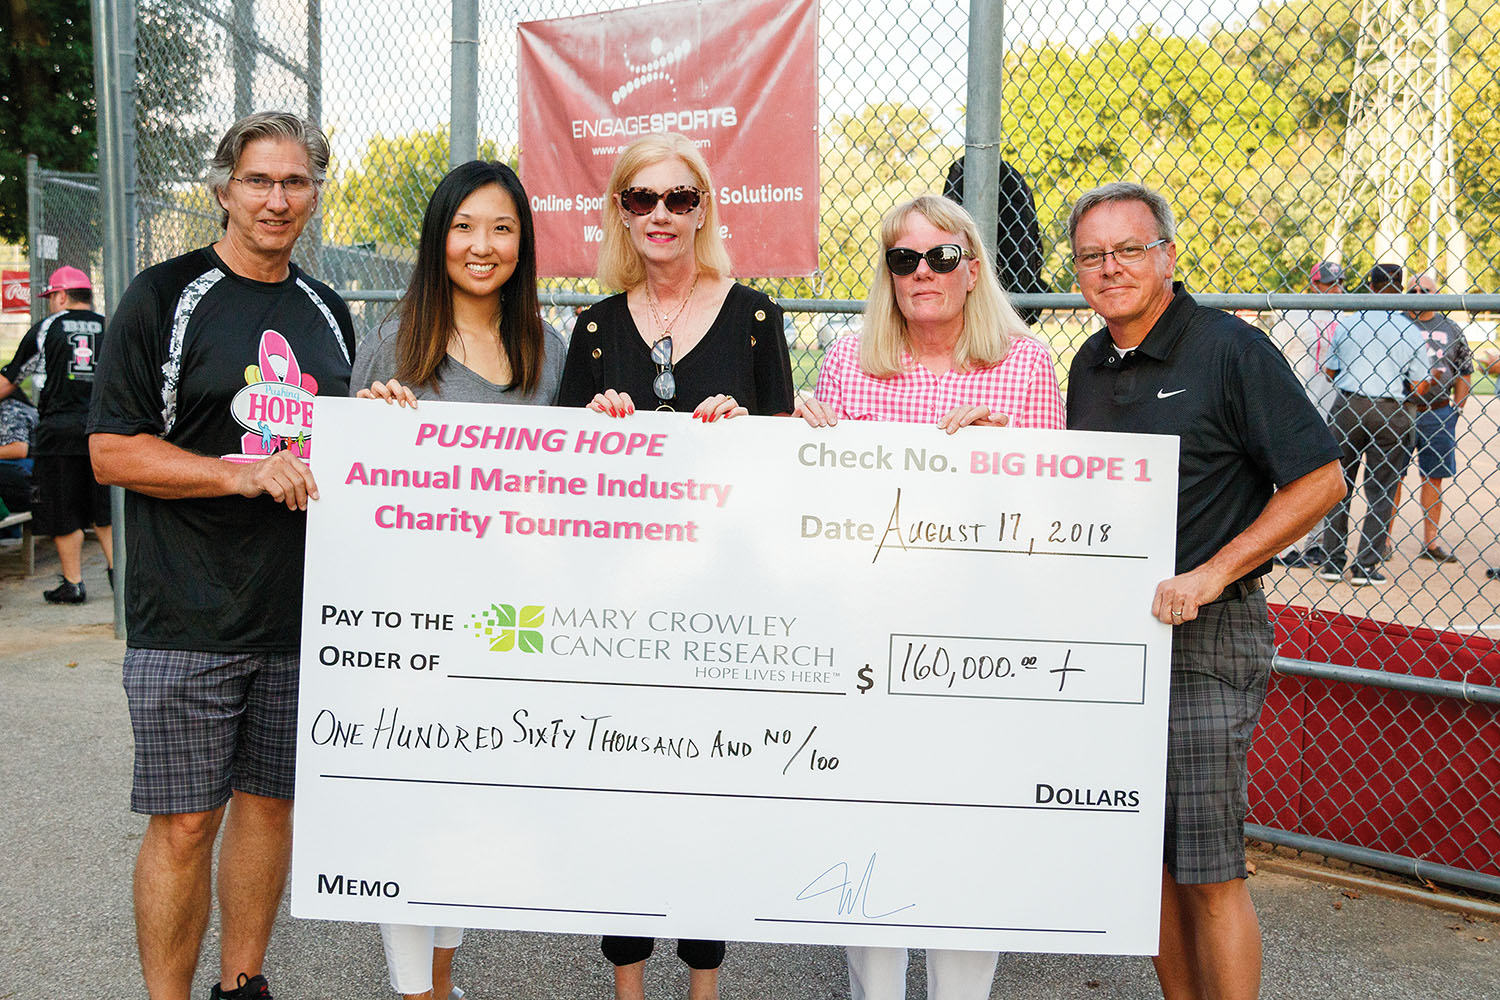 Big Hope 1 Tops $1 Million Raised For Cancer Research